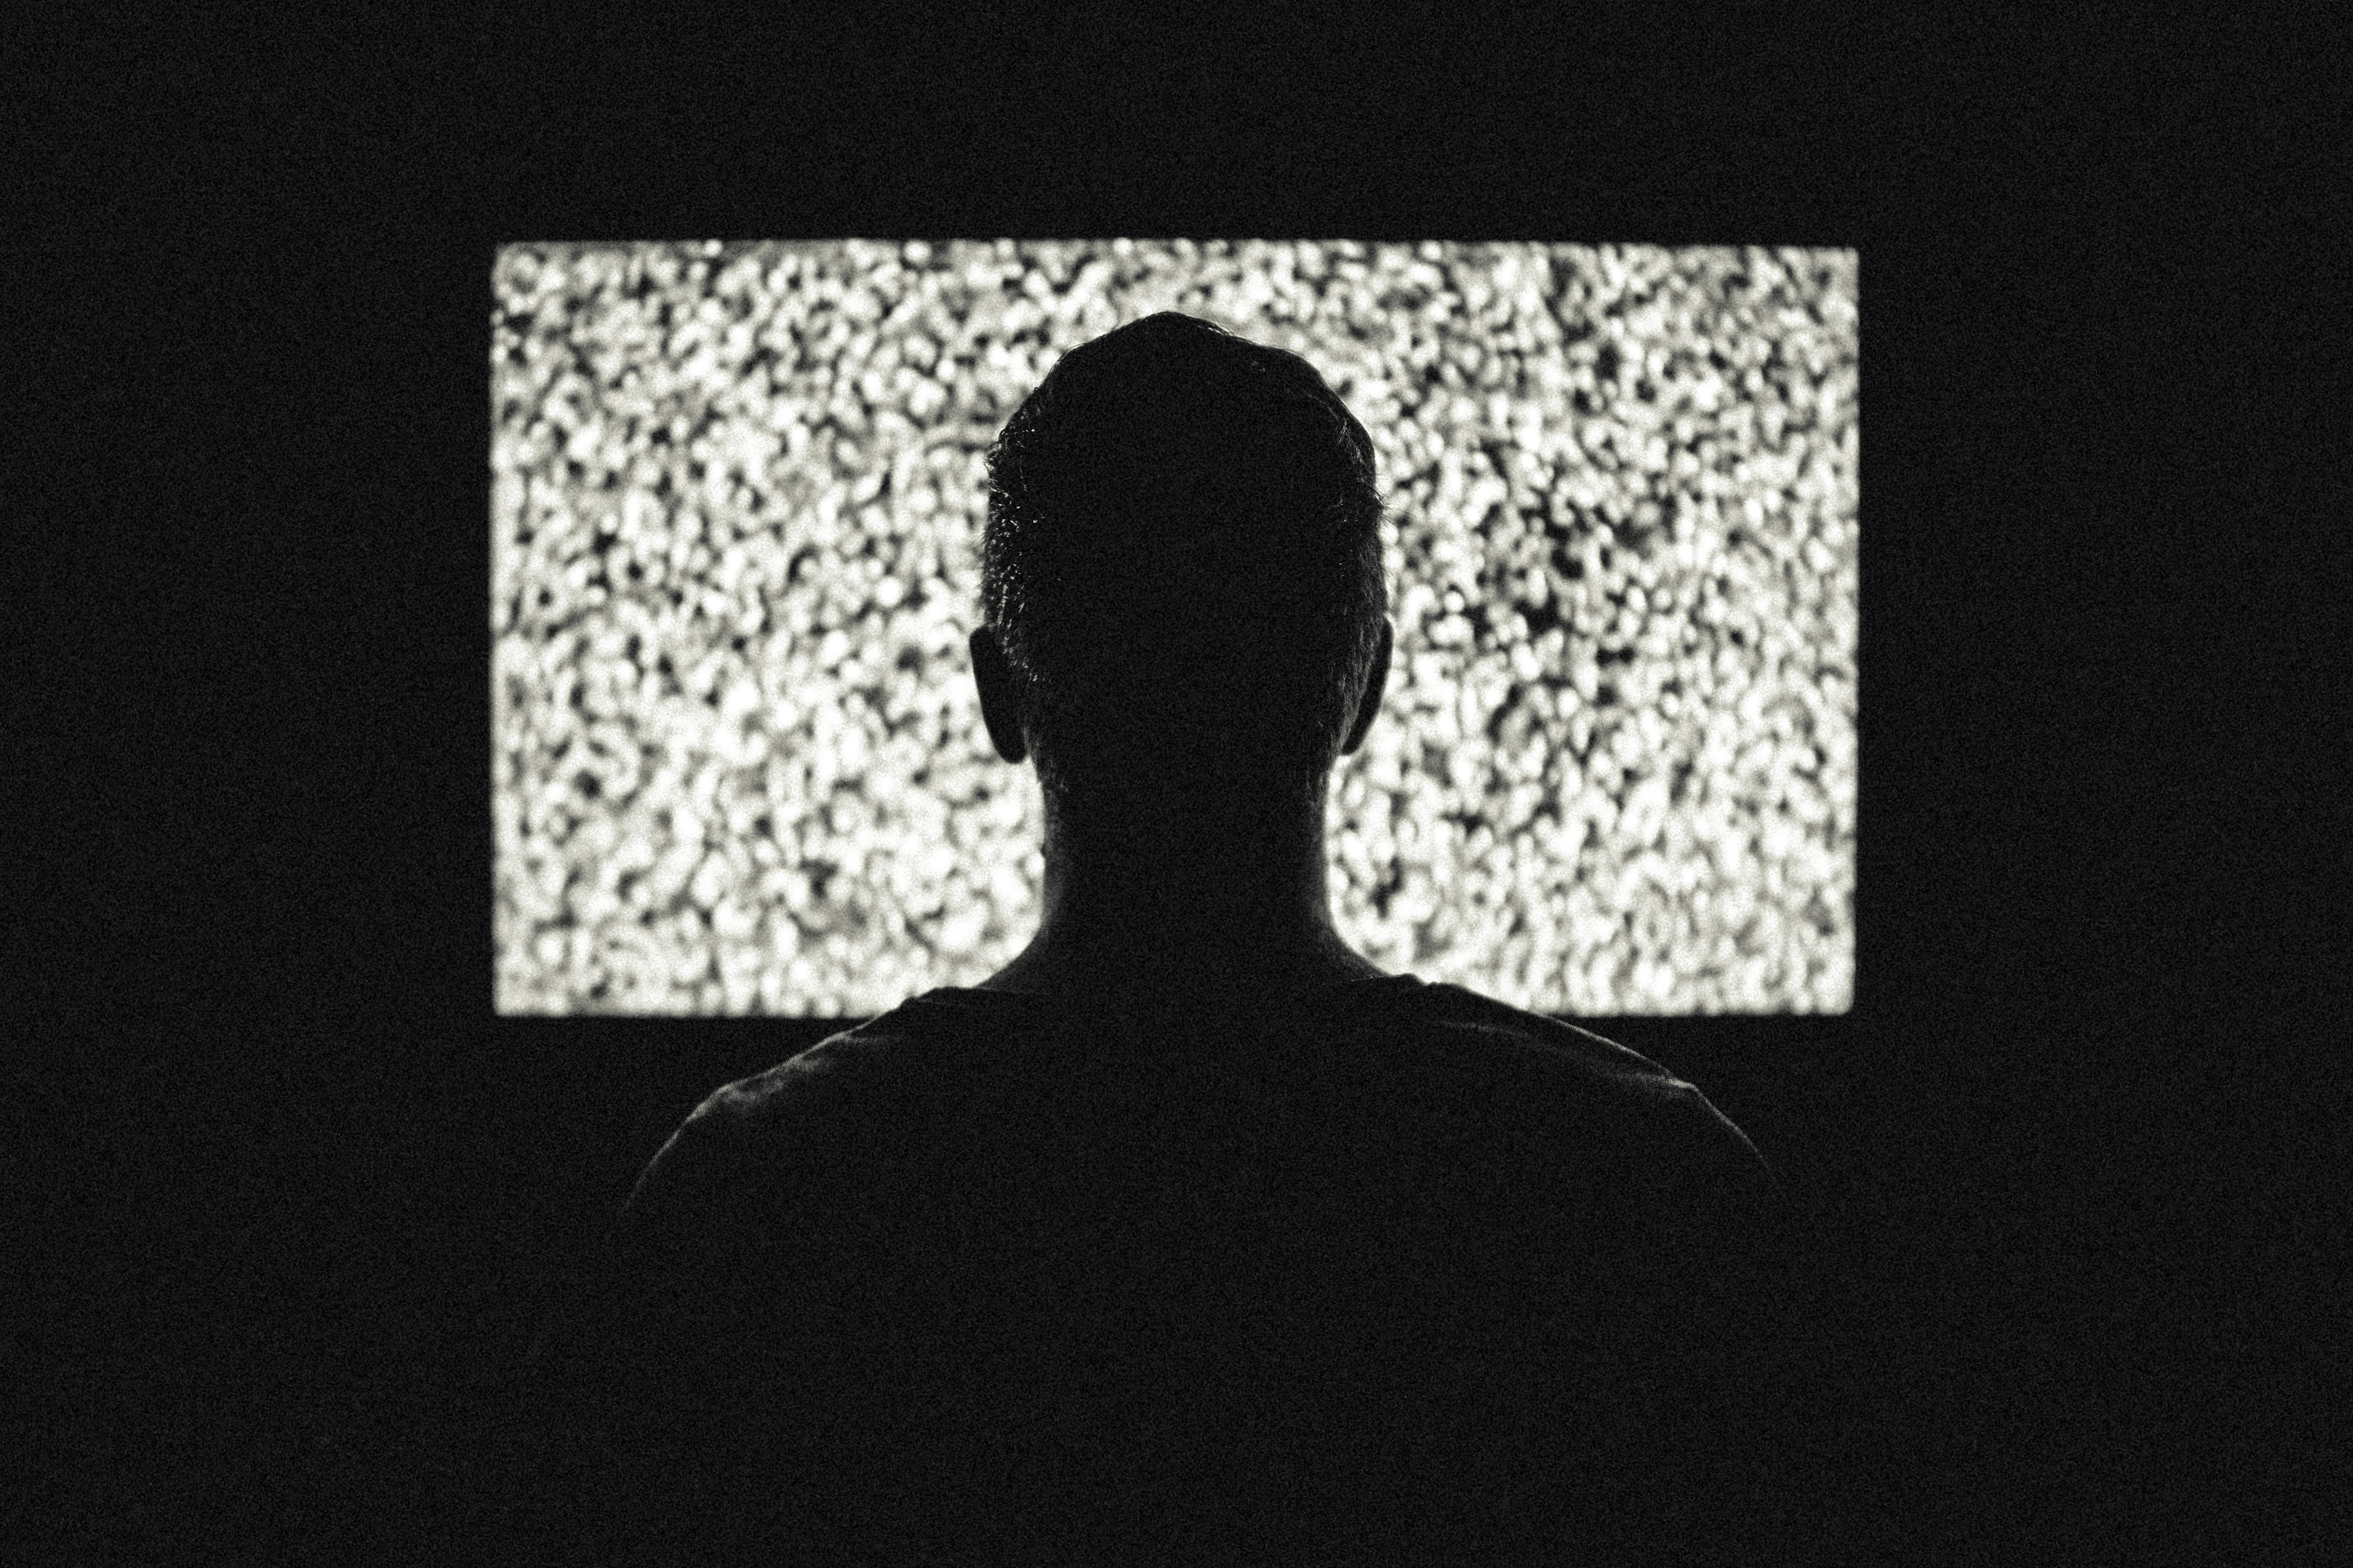 A man starring at a TV in a dark room